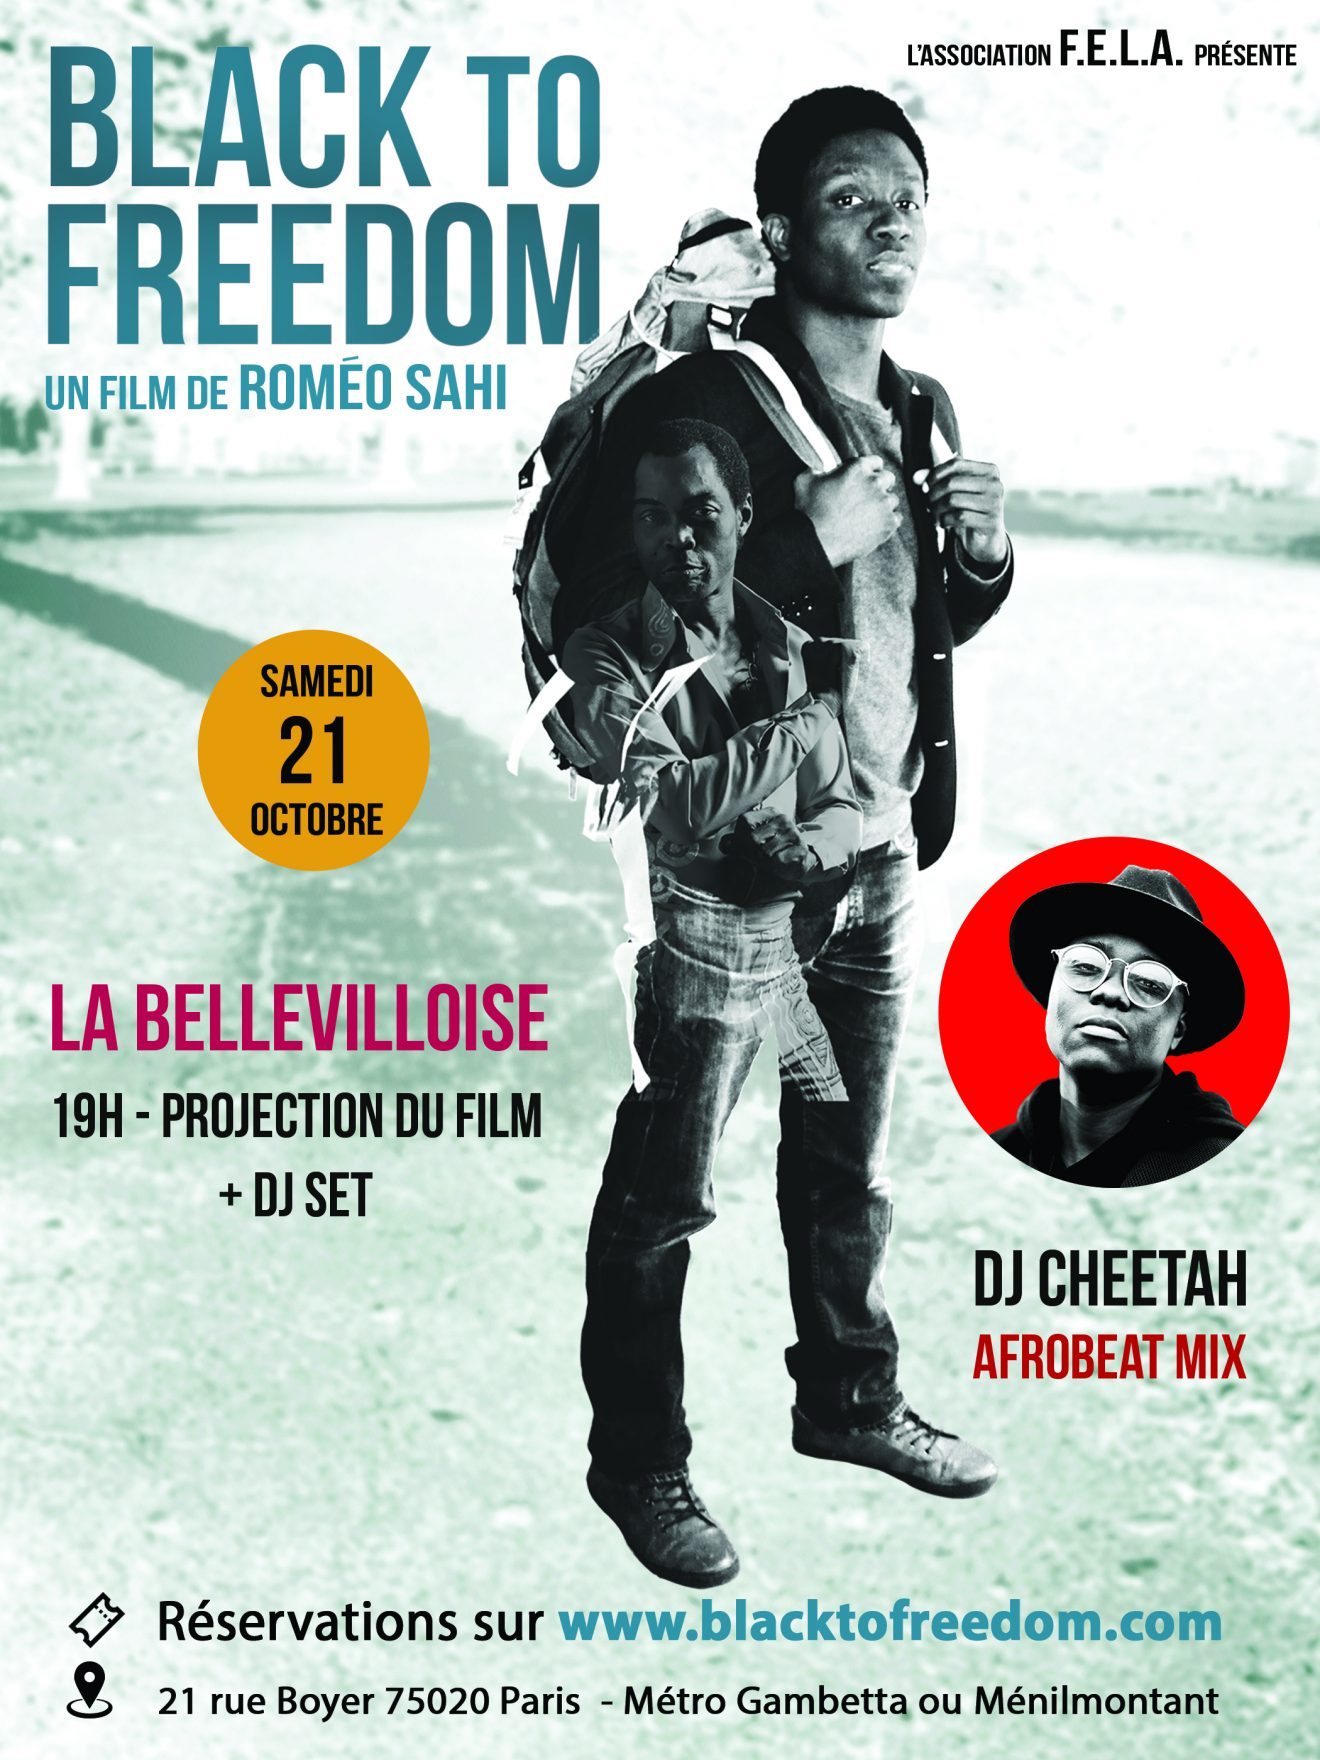 Black to freedom projection de film